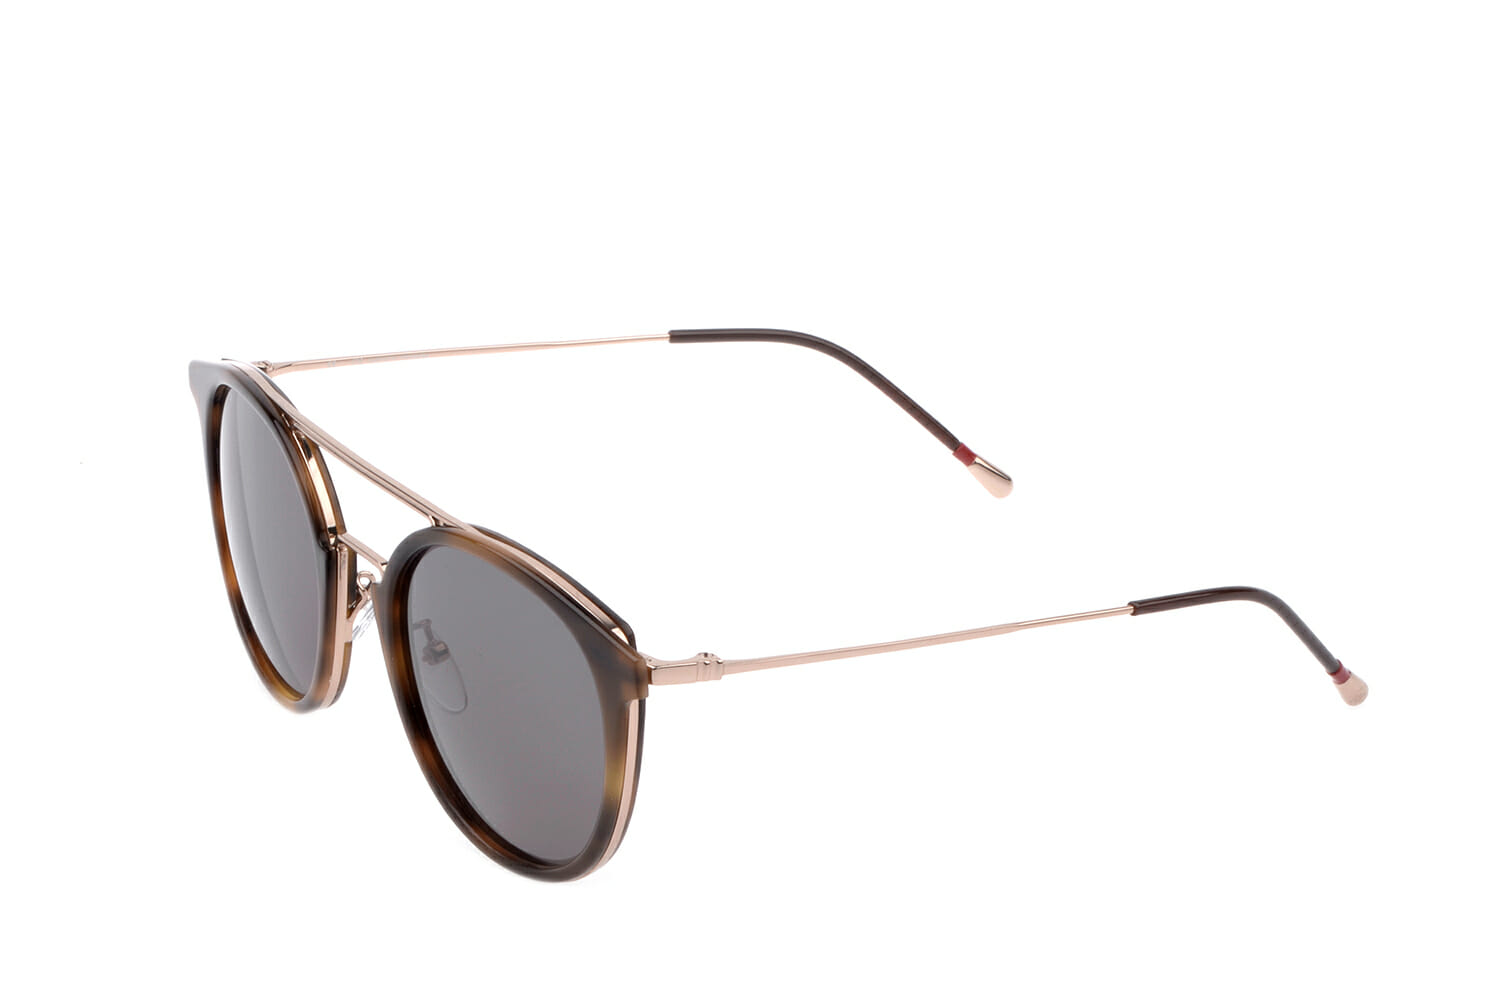 ch carolina herrera eyewear men side